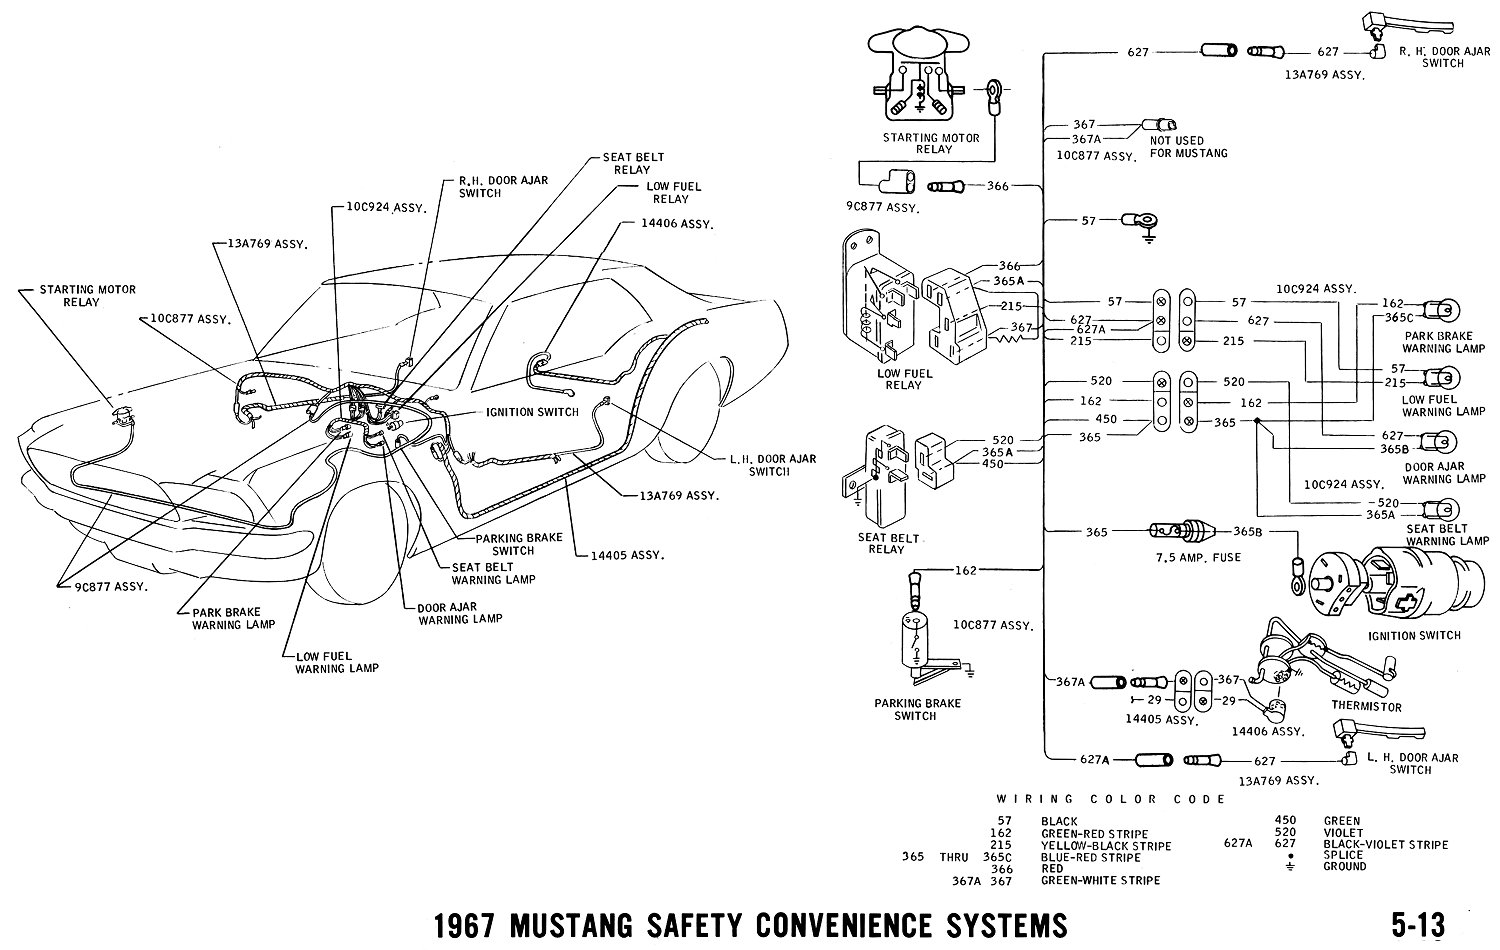 1965 Ford Mustang Fuel System Diagram - Wiring Diagram General